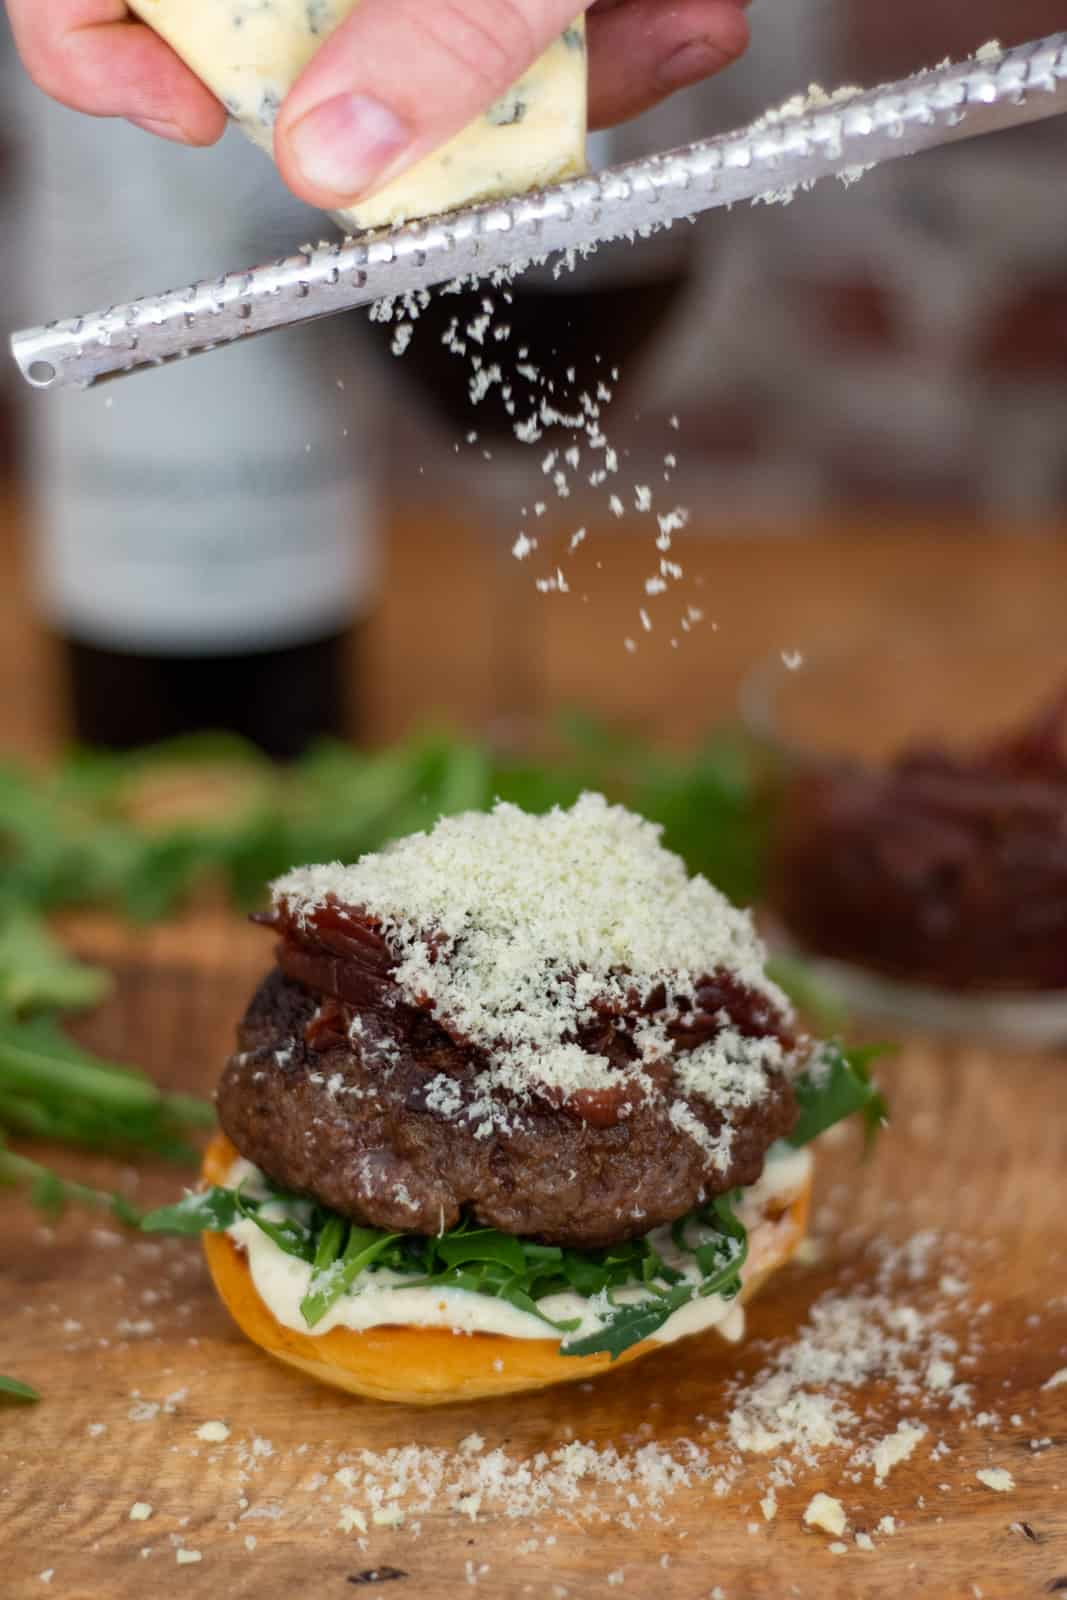 wagyu beef burger on board with frozen blue cheese being grated on top